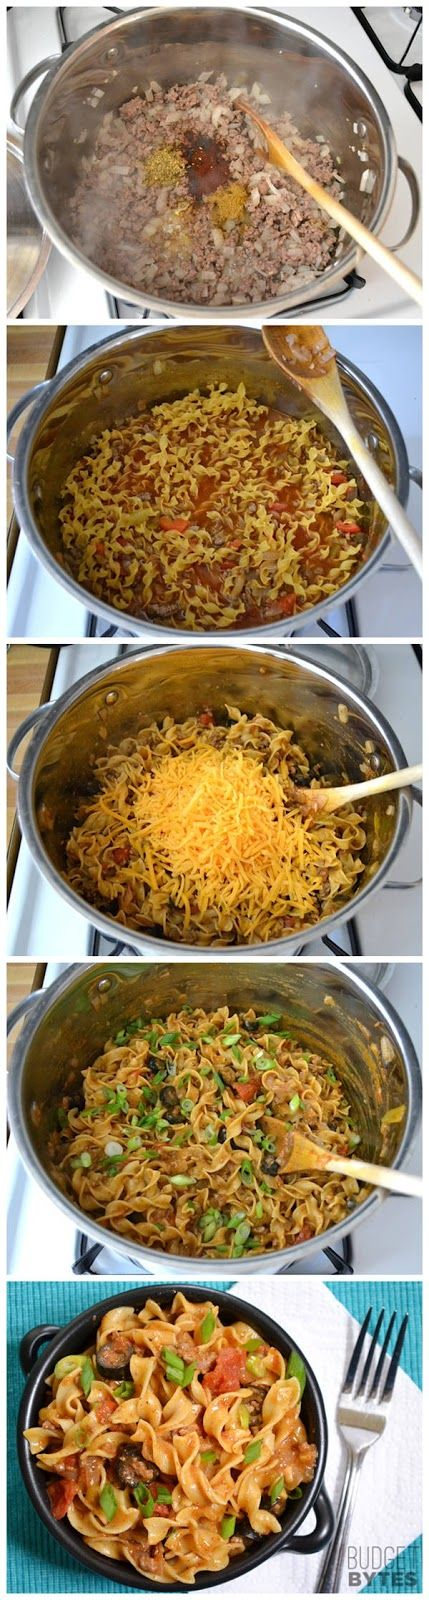 Beef Taco Pasta-Pinning this even though I'm trying to avoid too many pasta dishes, looks yum.